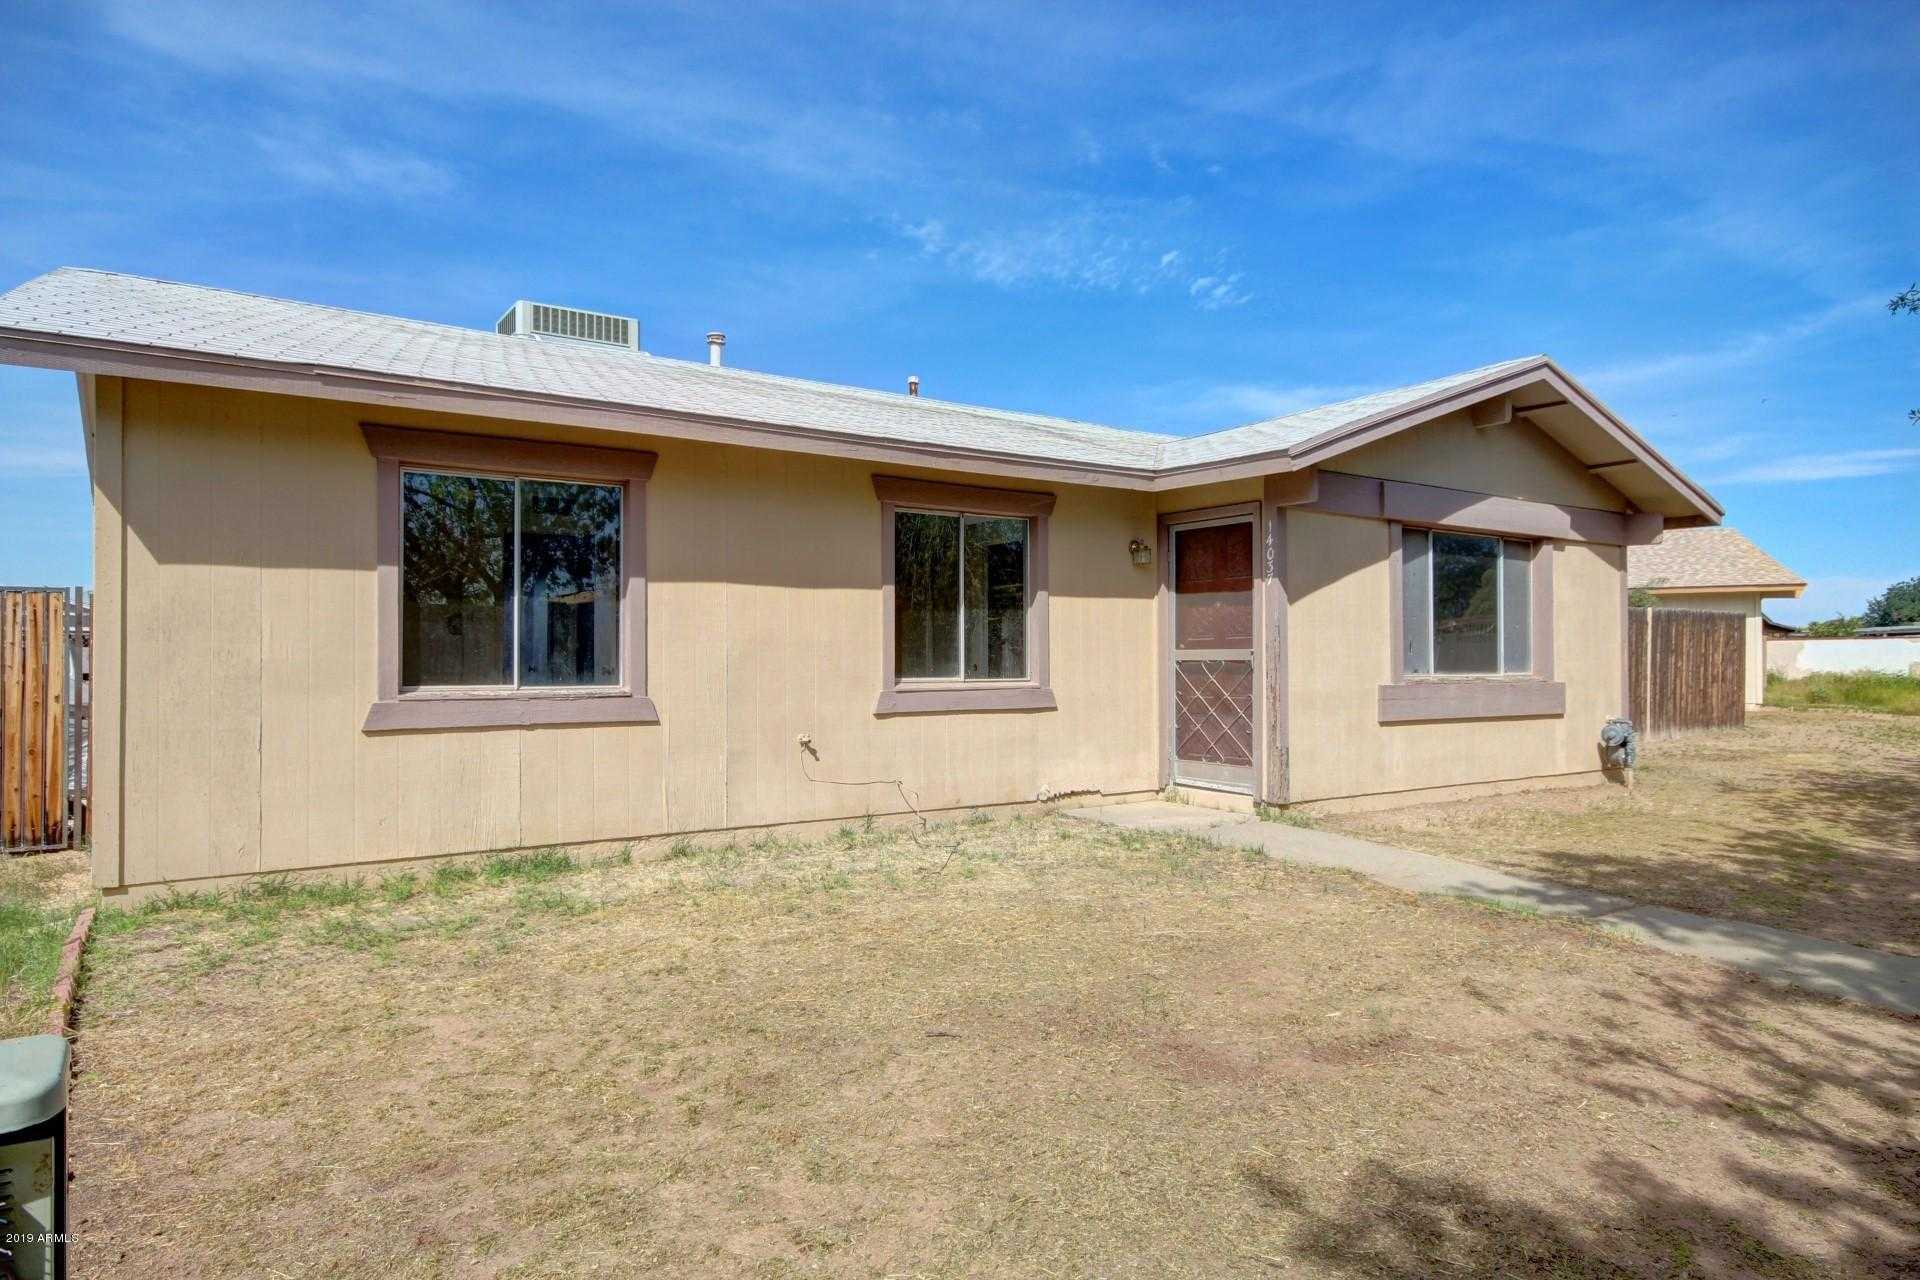 $209,000 - 3Br/2Ba - Home for Sale in Patio Homes North 4, Glendale